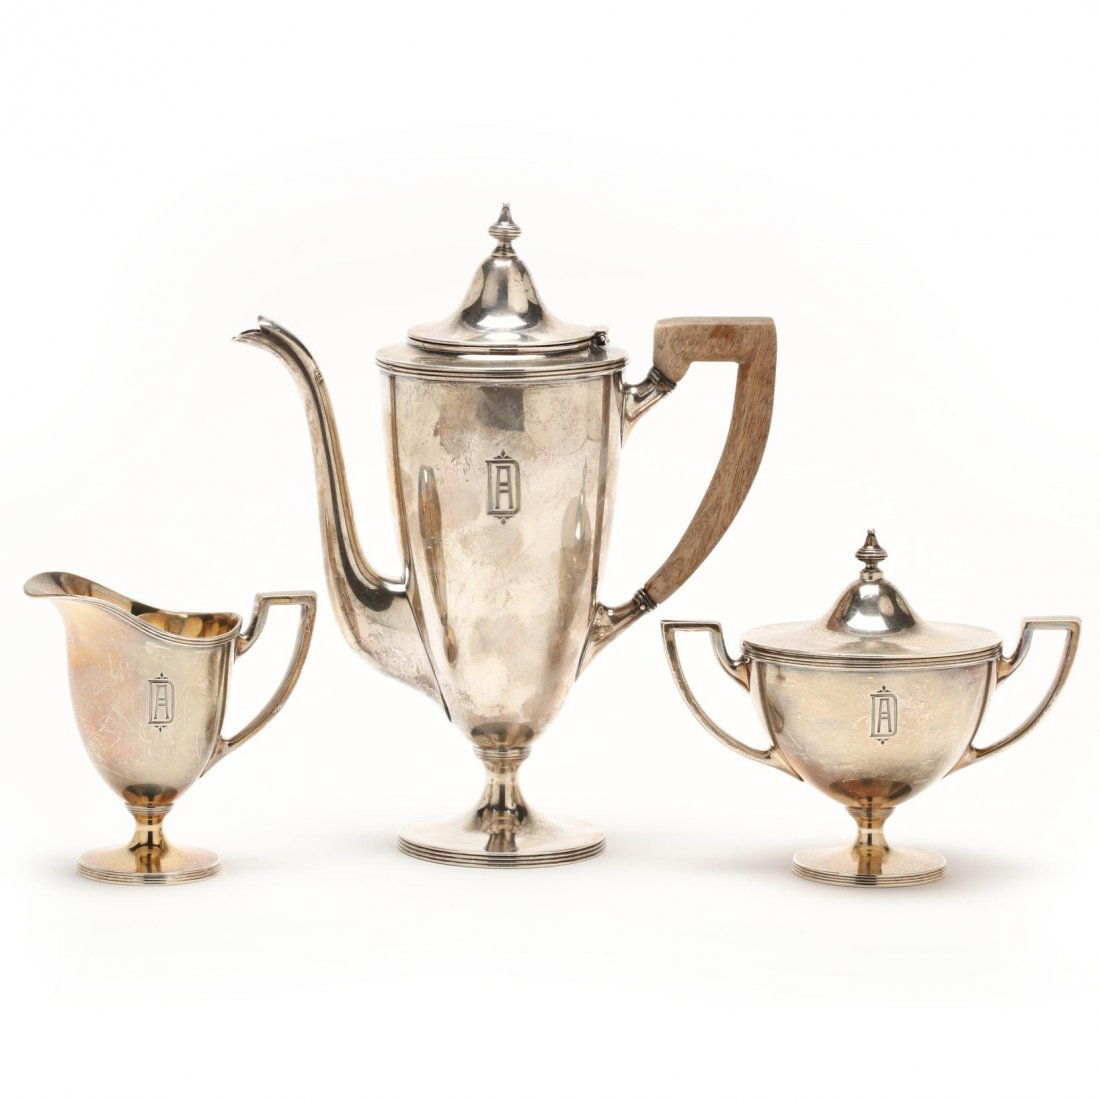 A Tiffany & Co. Sterling Silver Demitasse Set